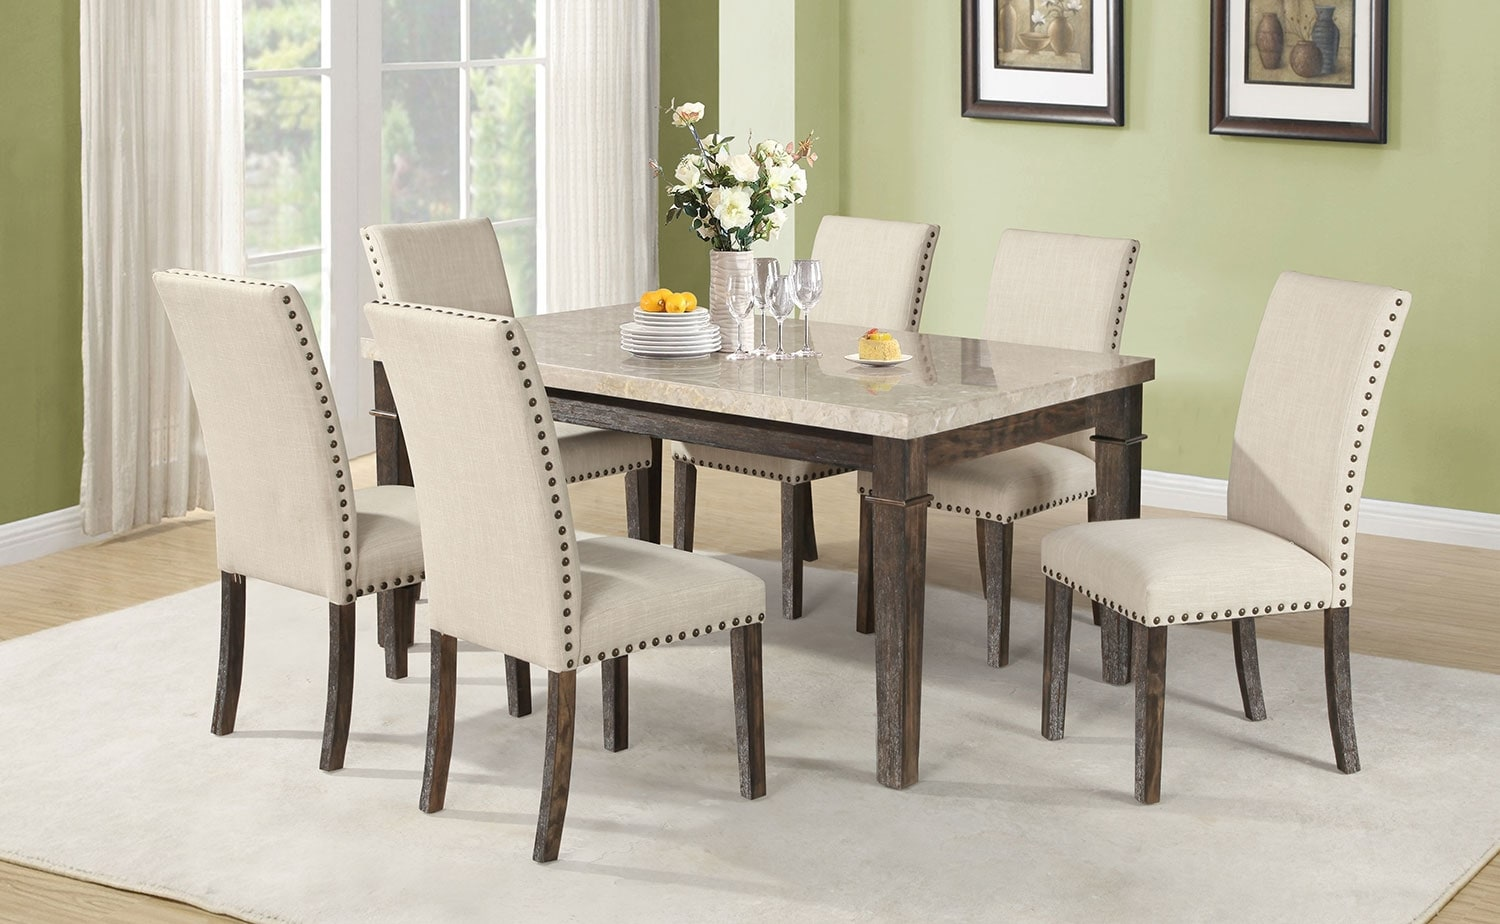 Dining Room Furniture - Aldo 7-Piece Dining Package